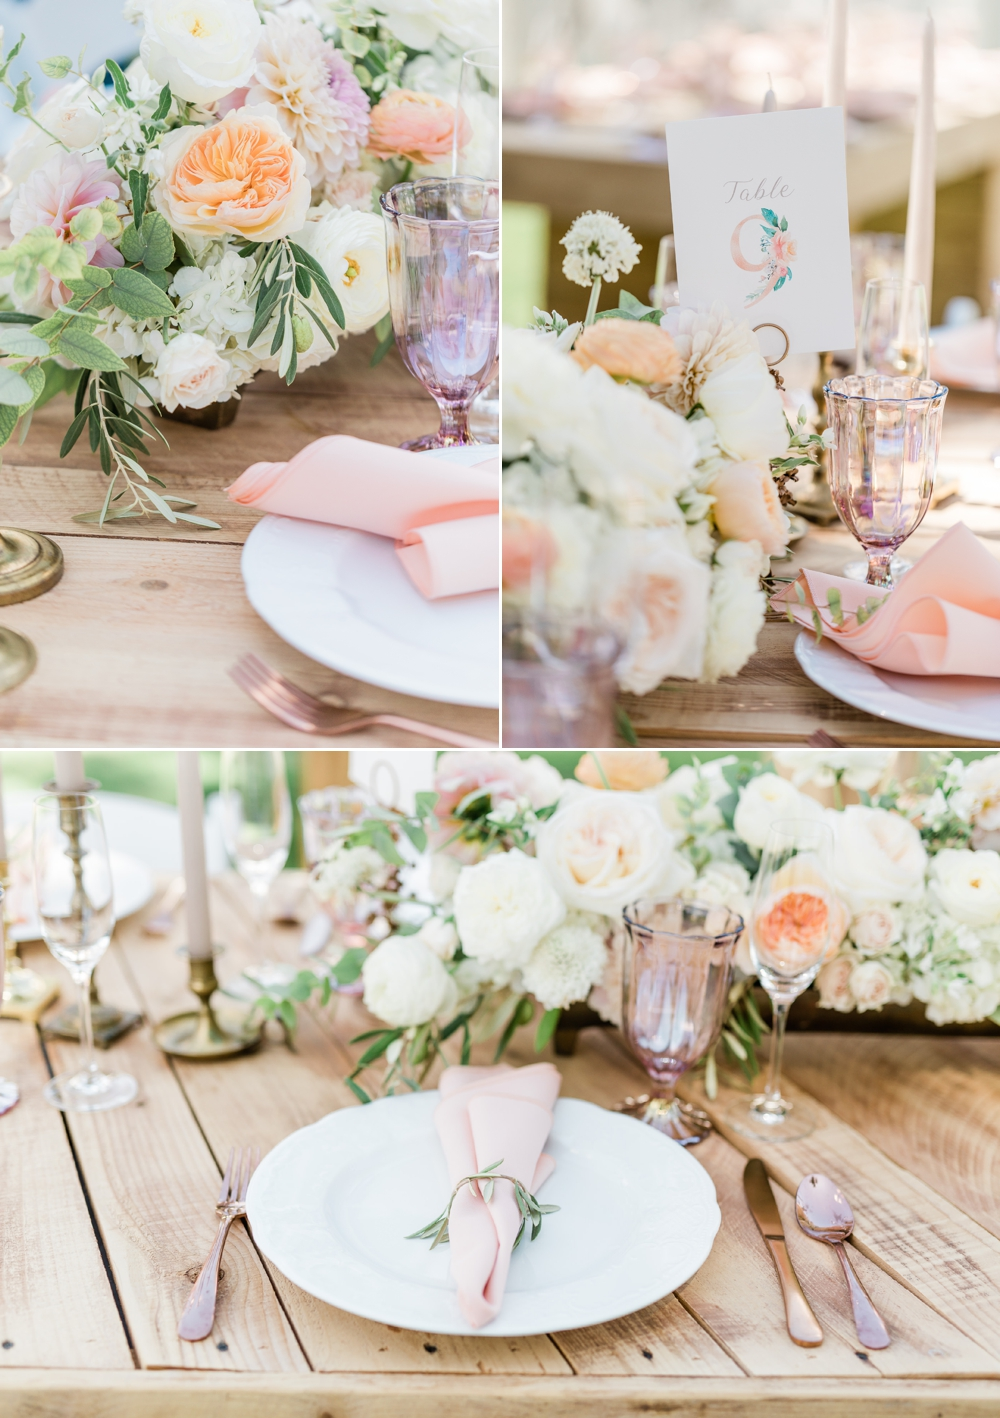 the belle rae, shannon hough events florals, blush and neutral florals